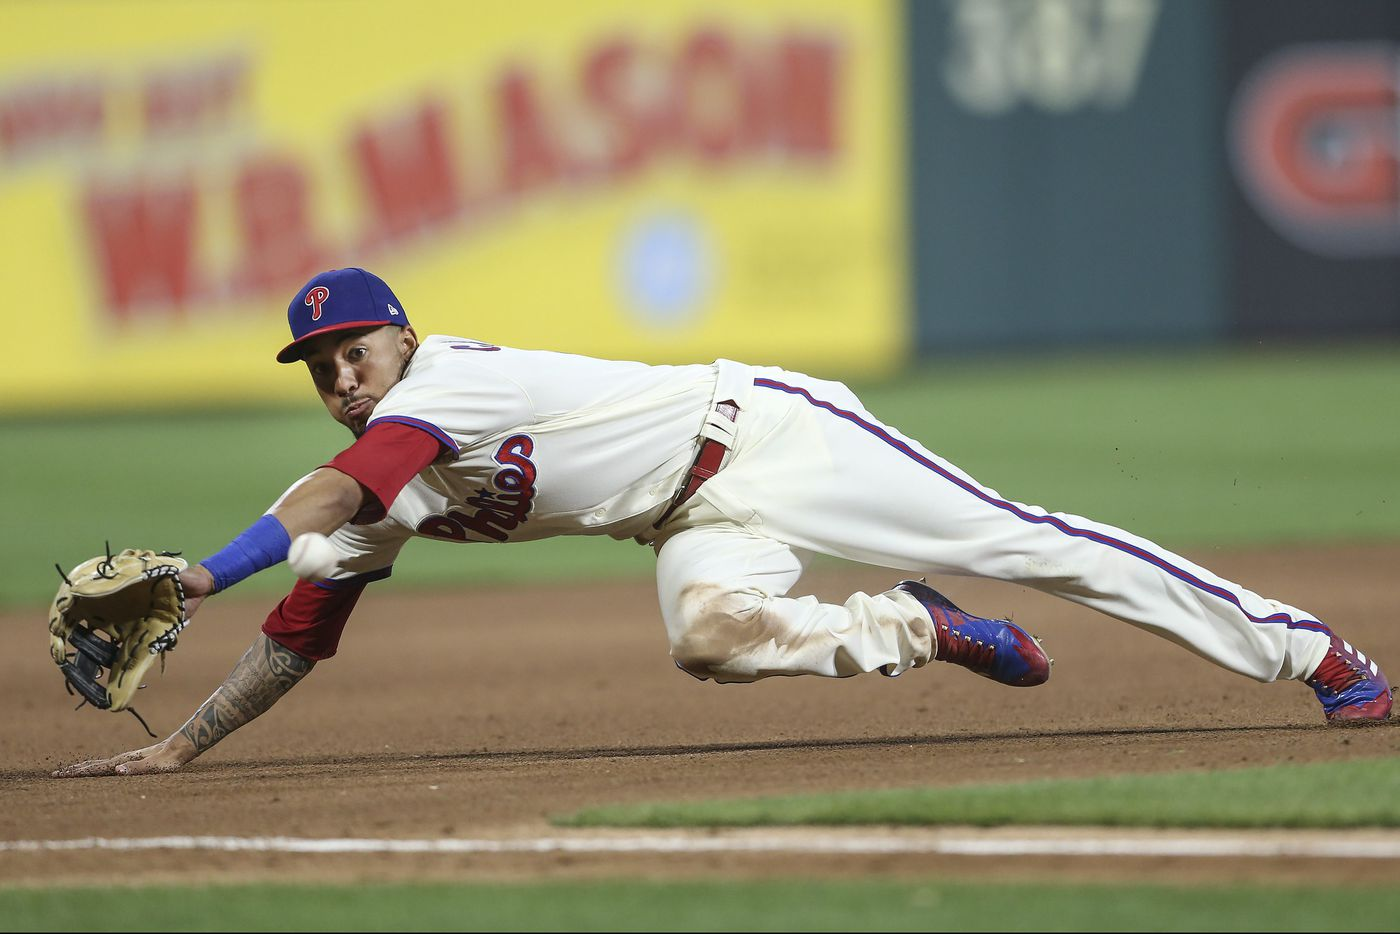 Phillies might need to get defensive to make the playoffs | Extra Innings